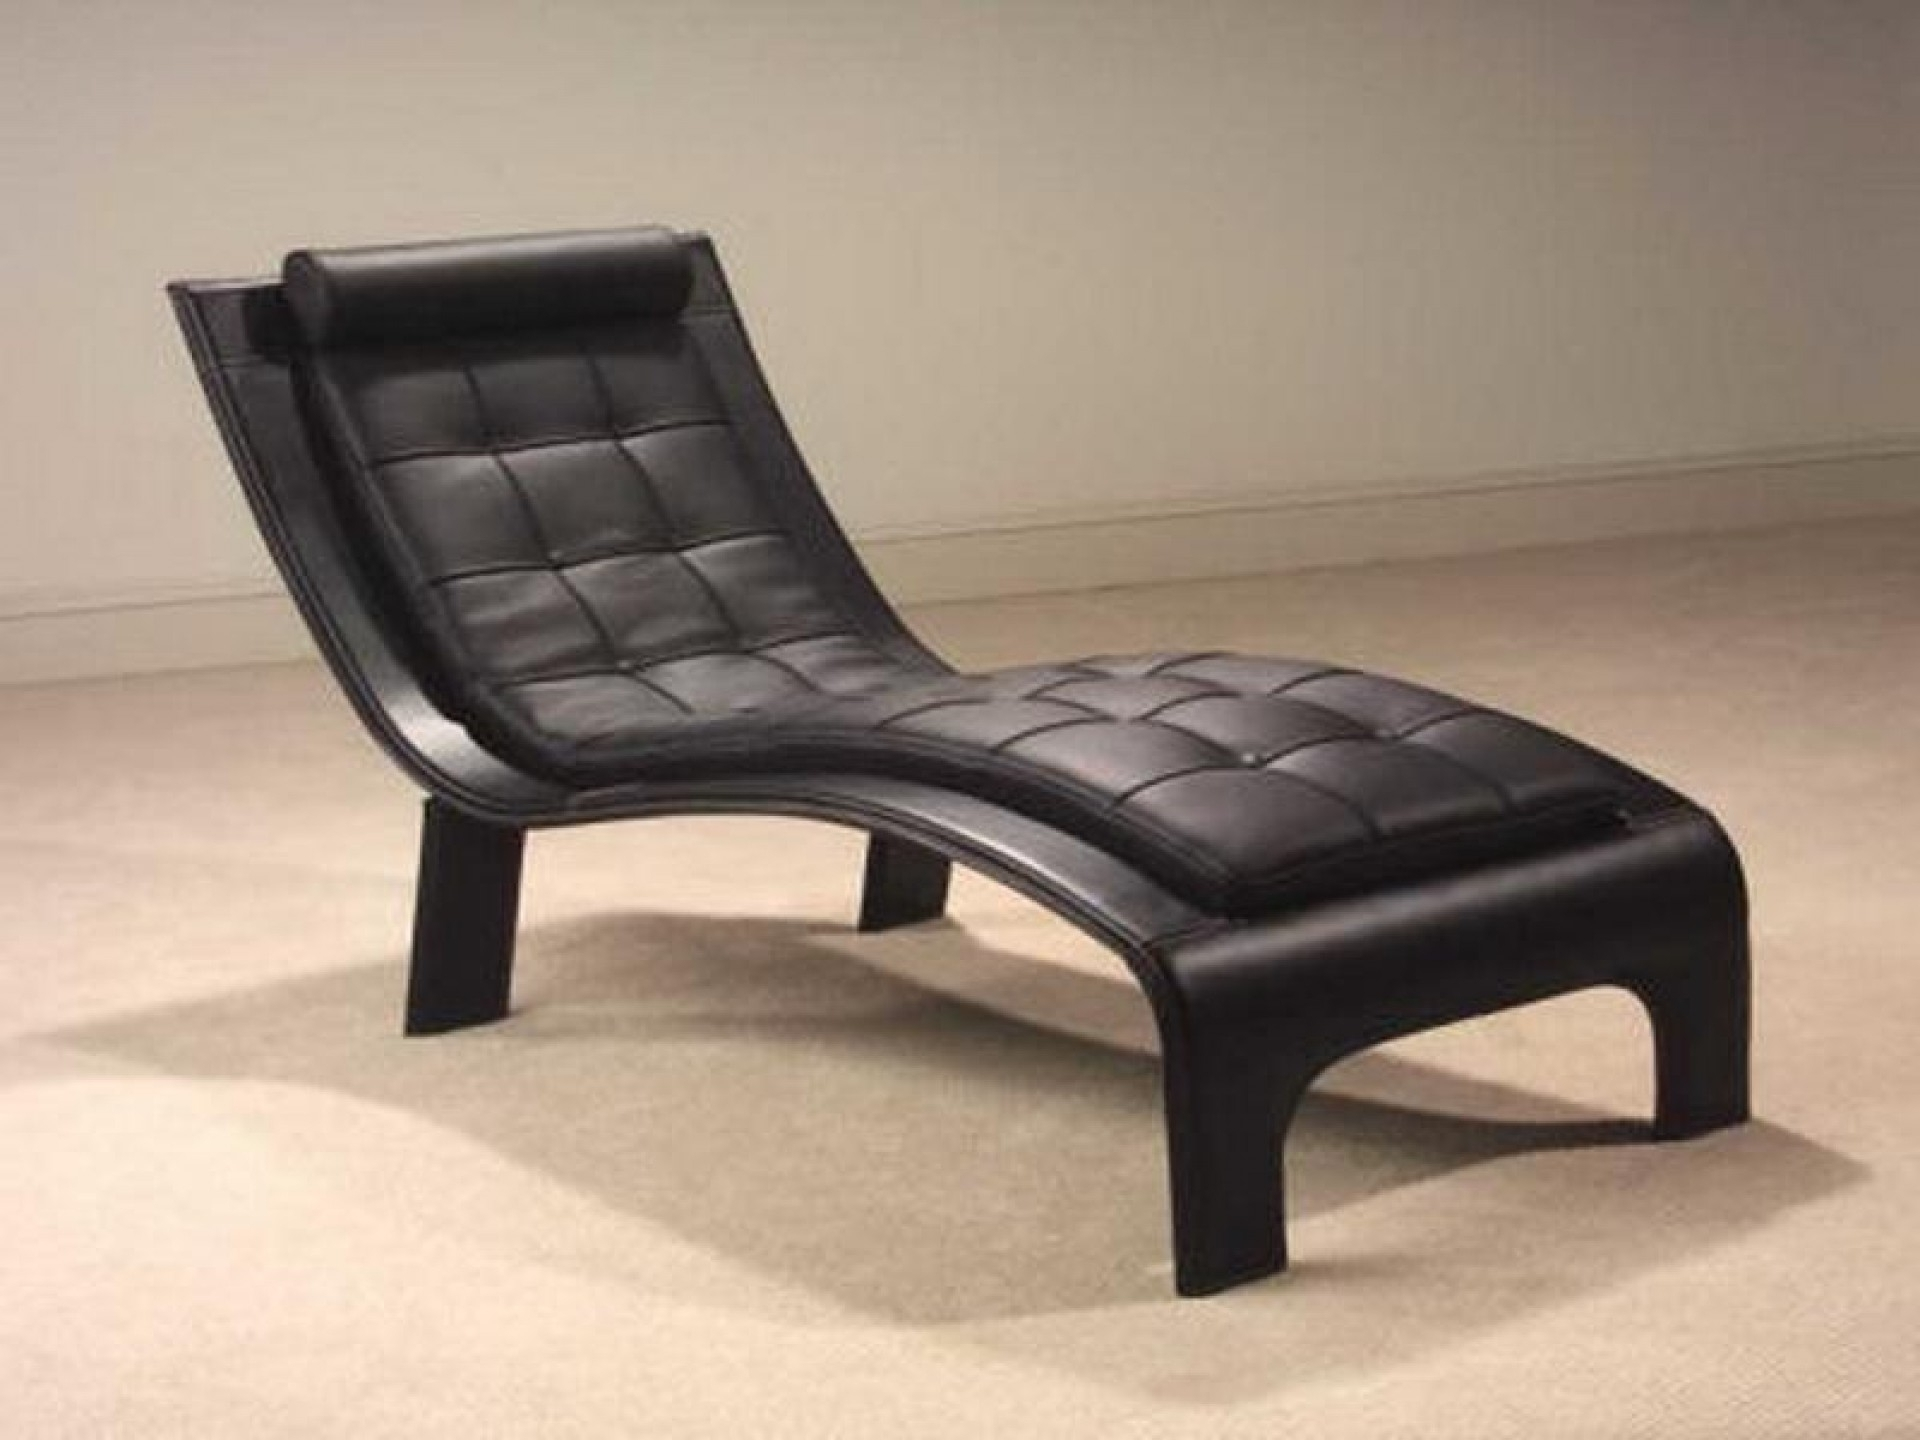 Most Popular Black Leather Chaise Lounge Chairs • Lounge Chairs Ideas Within Black Leather Chaise Lounges (View 14 of 15)